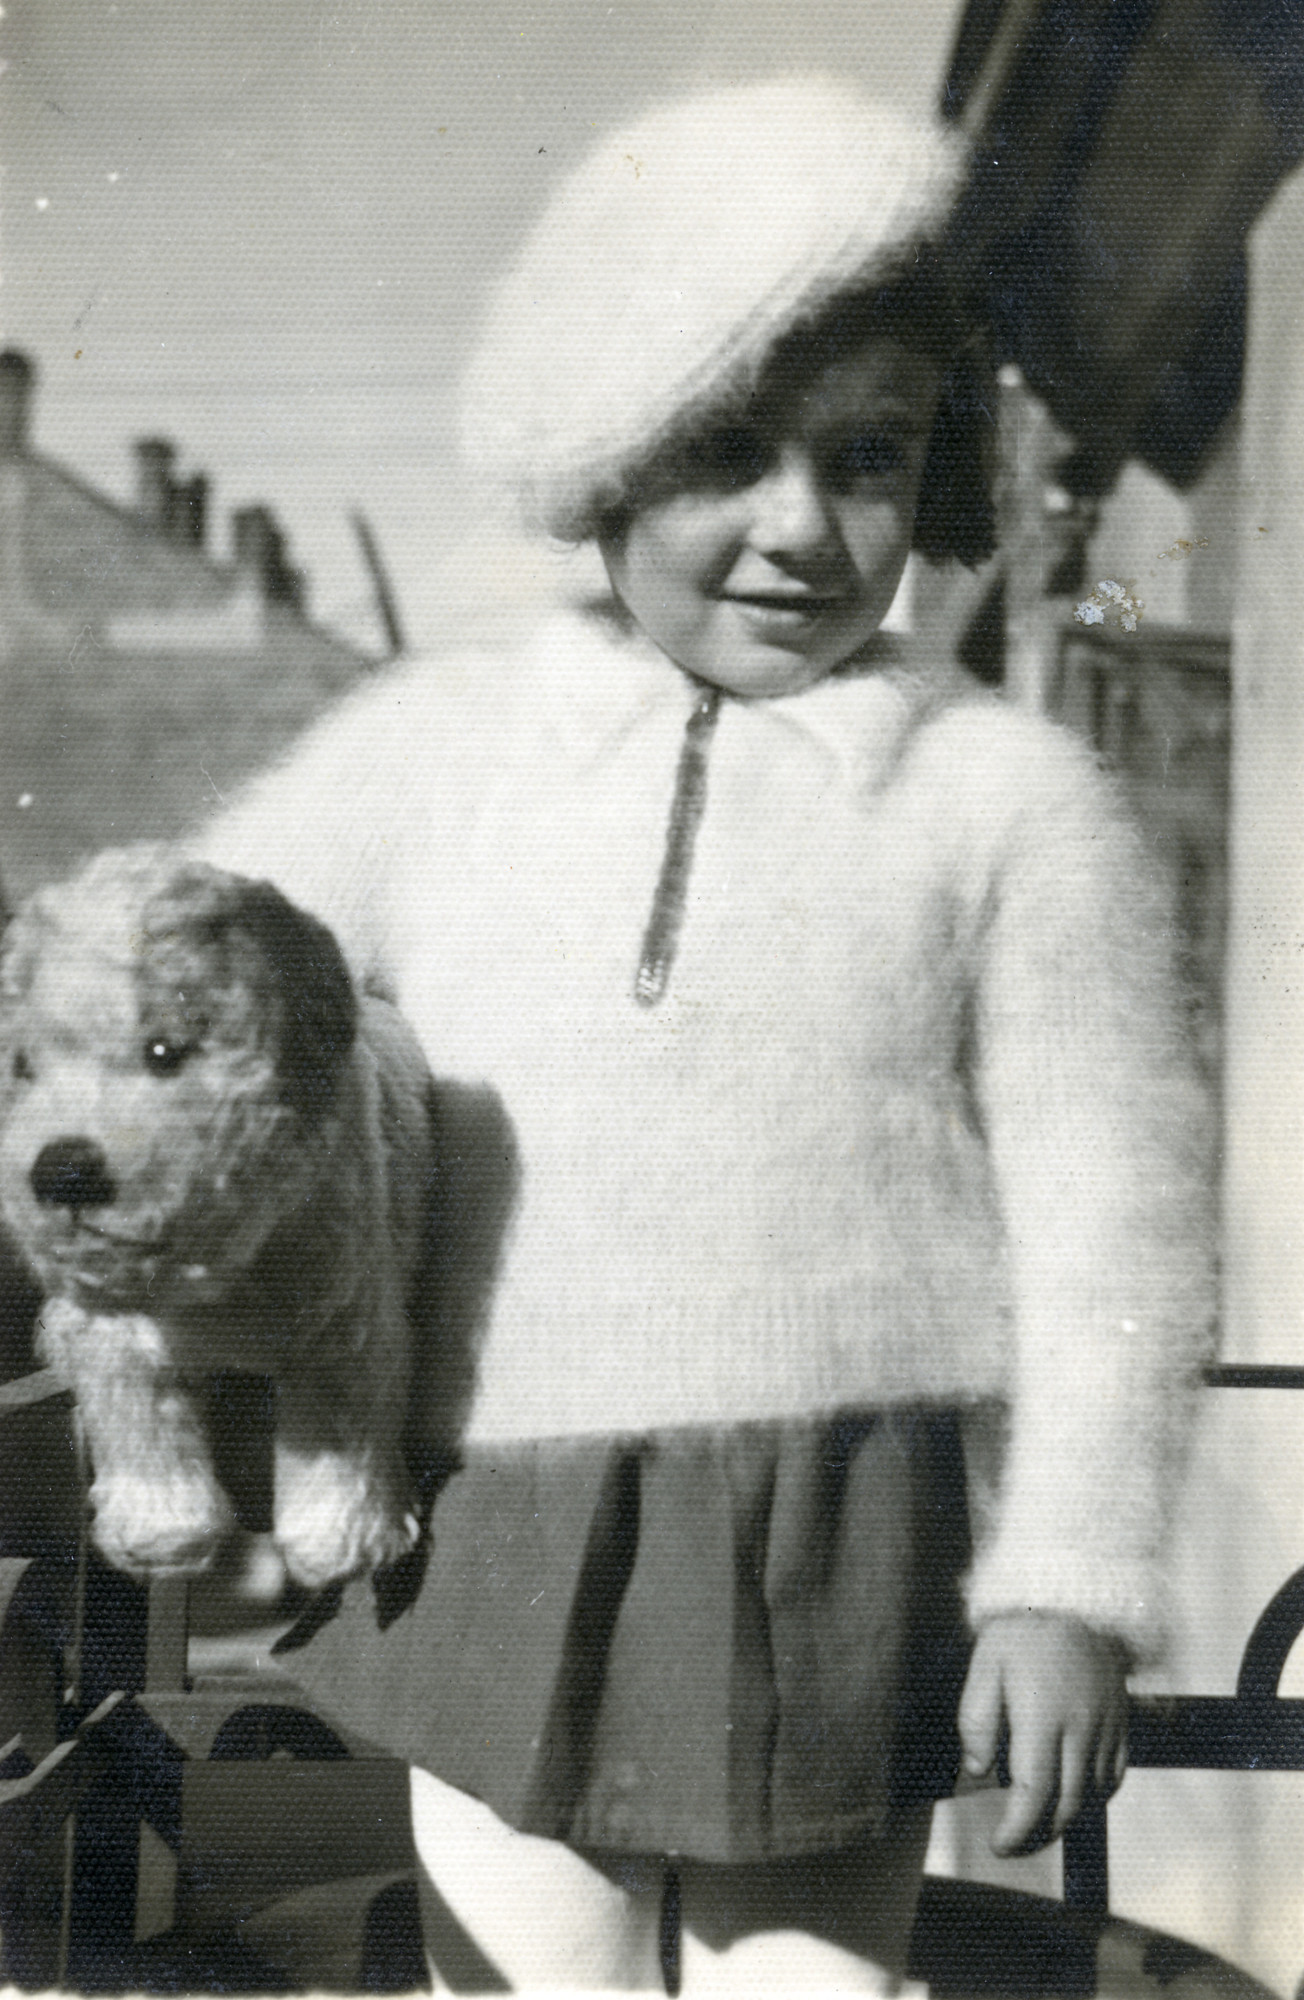 Leah Alterman poses, holding her stuffed animal prior to going into hiding.